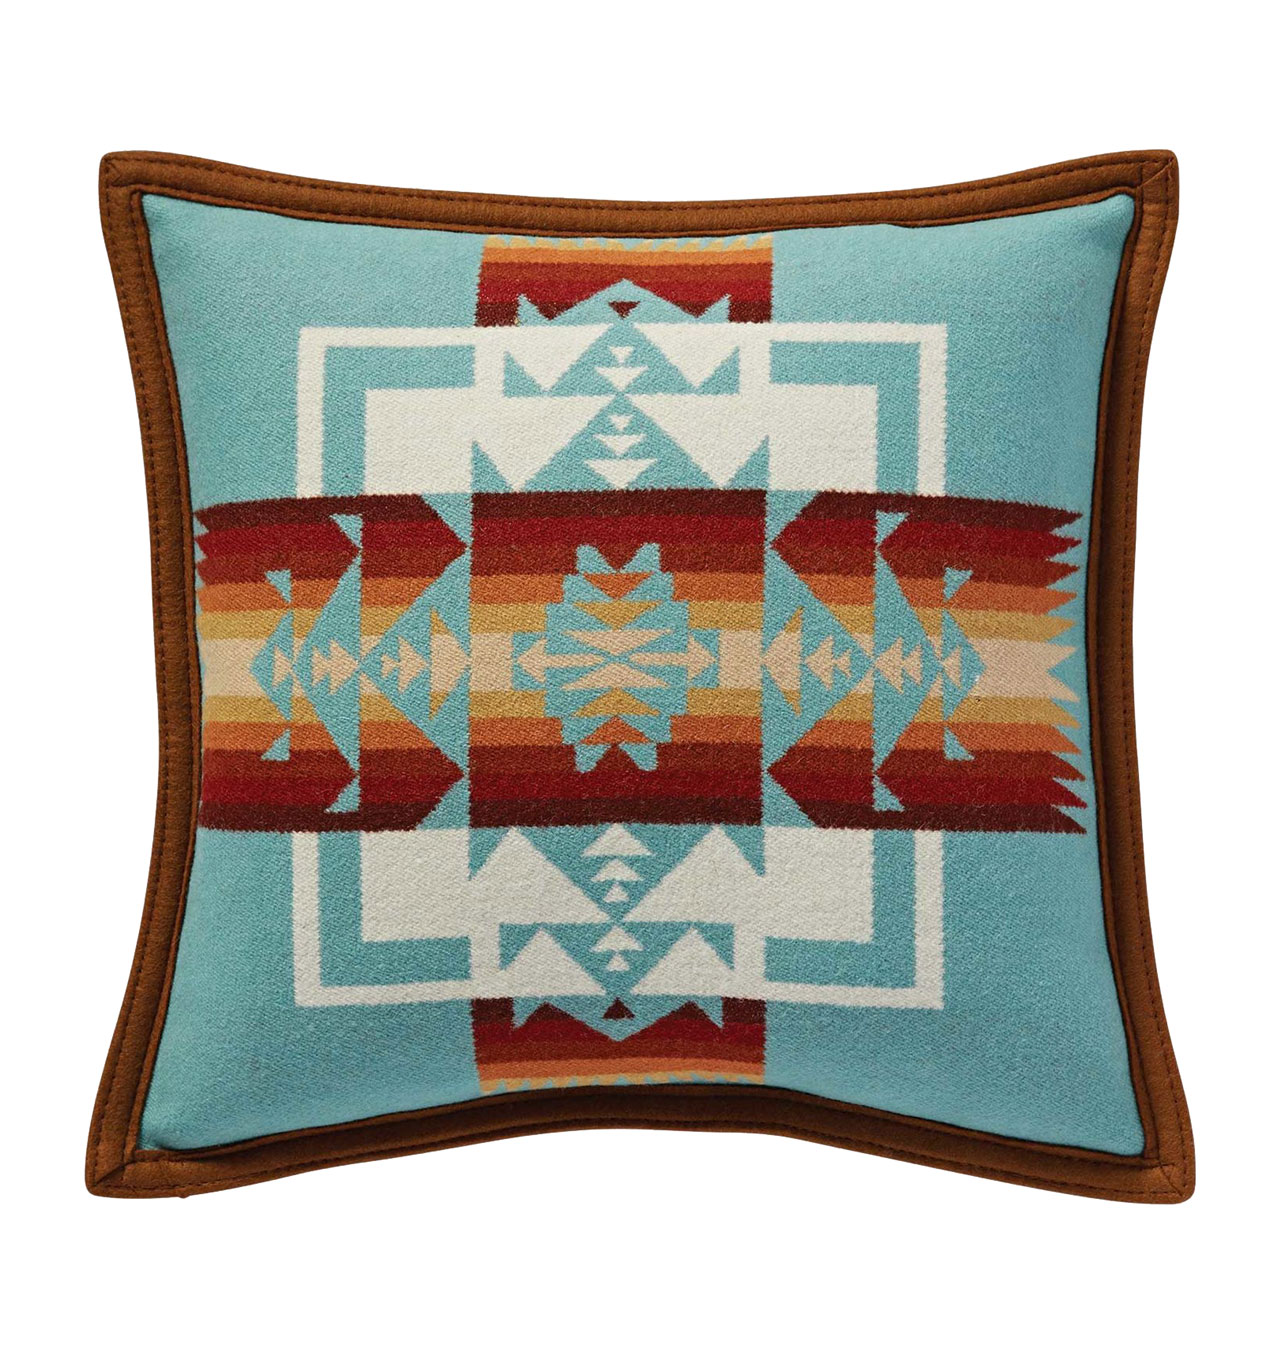 Pendelton---Chief-Joseph-Pillow---Aqua